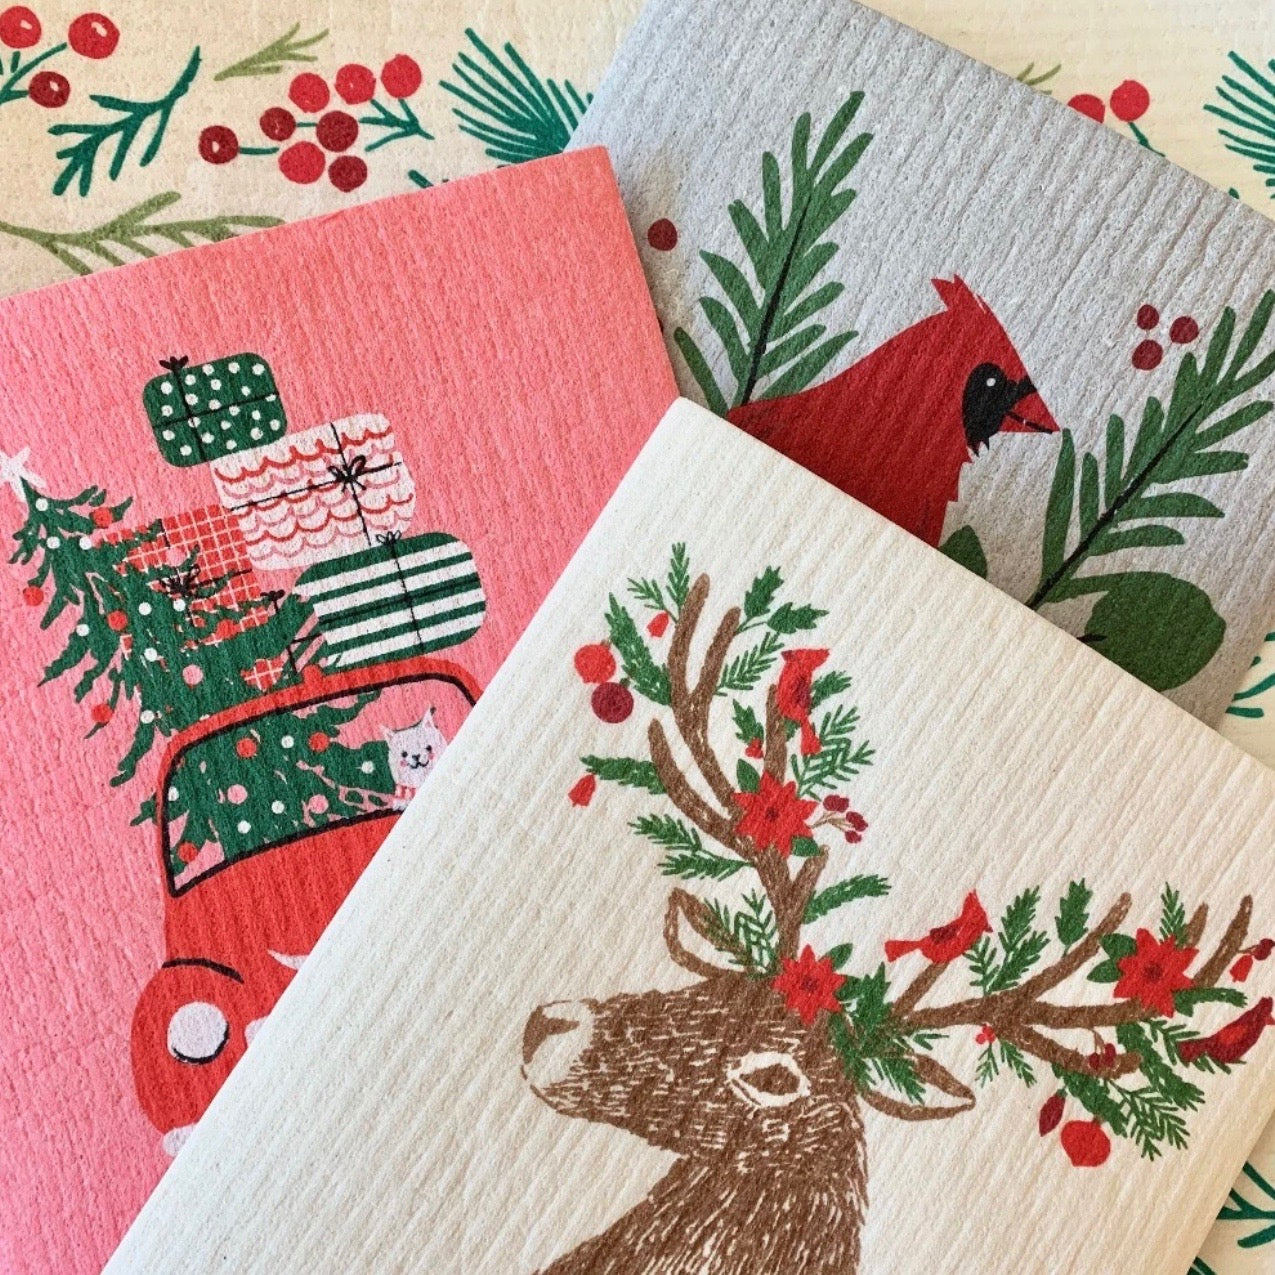 Christmas Swedish Dish Cloths